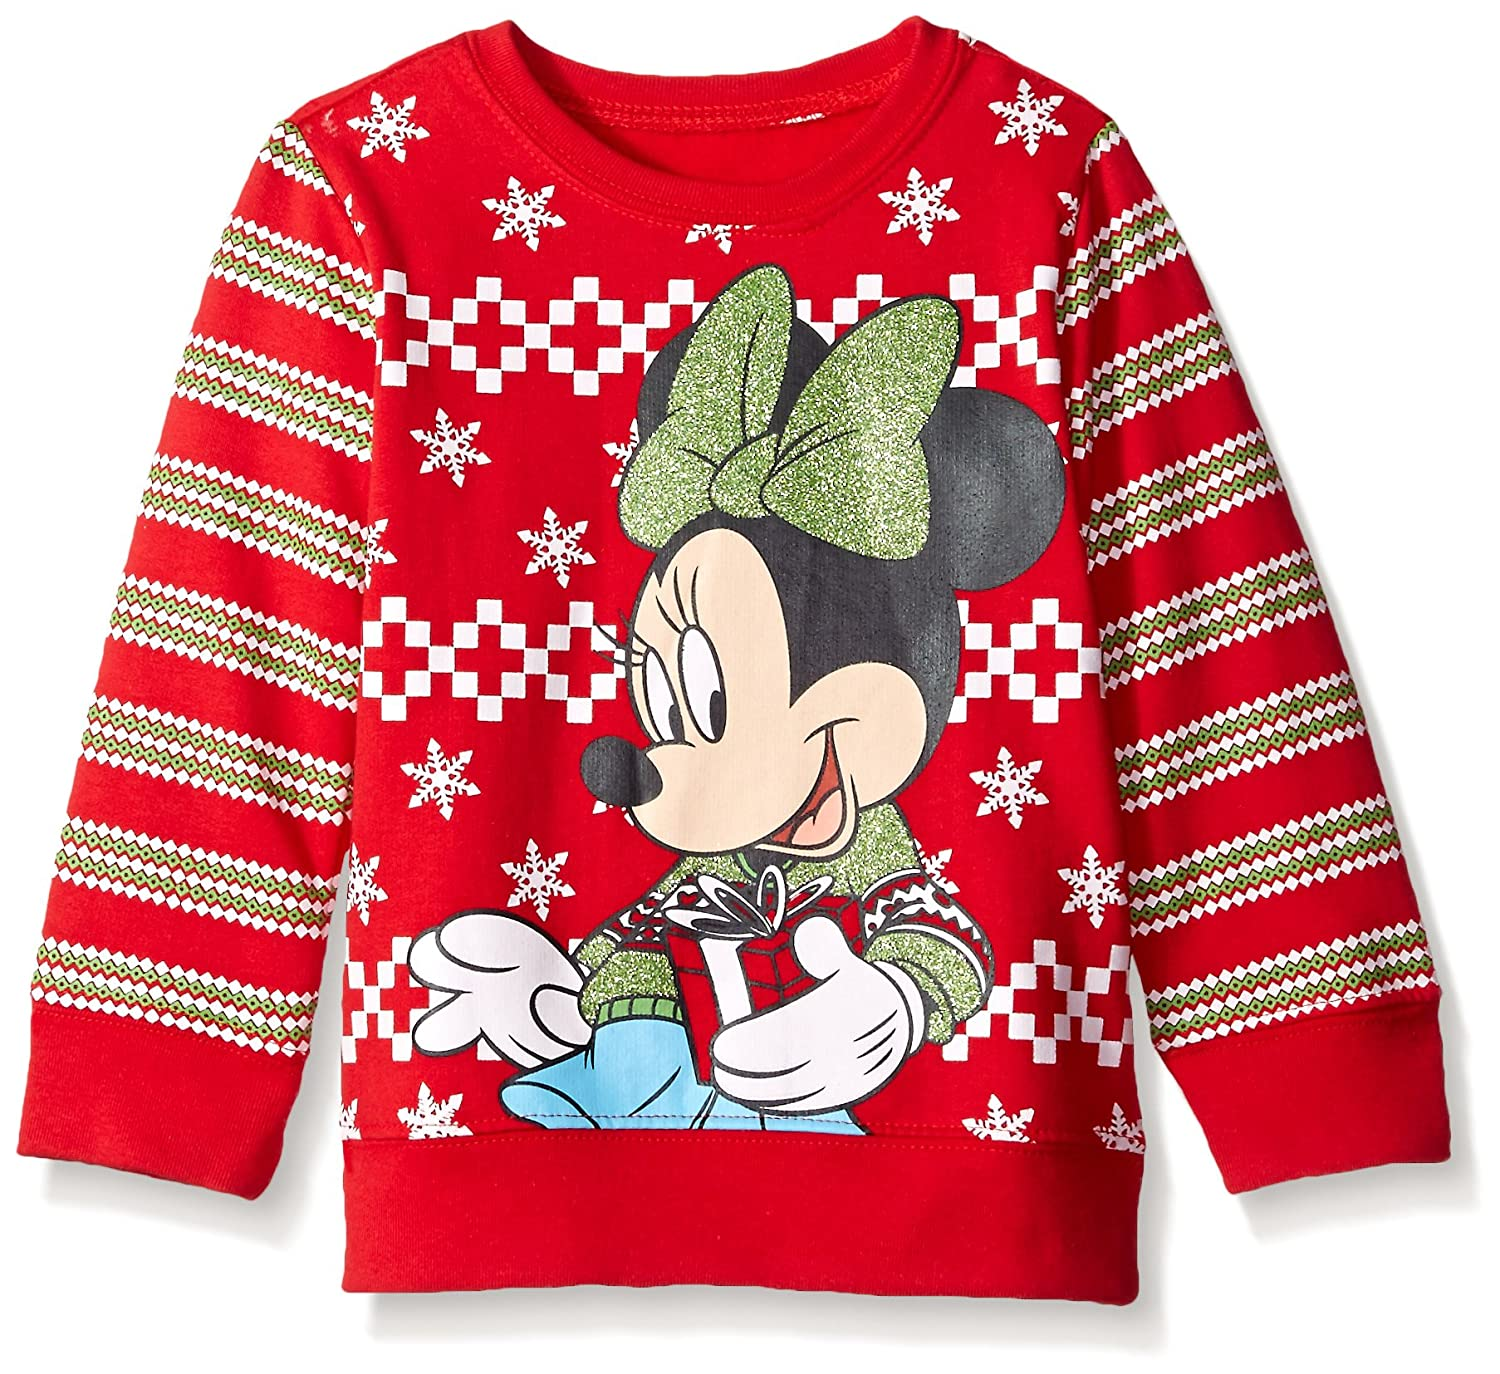 Disney Girls' Minnie Mouse With Gift Nordic Crew Neck Sweater Red 4T Freeze Children' s Apparel ZCST503-6T18